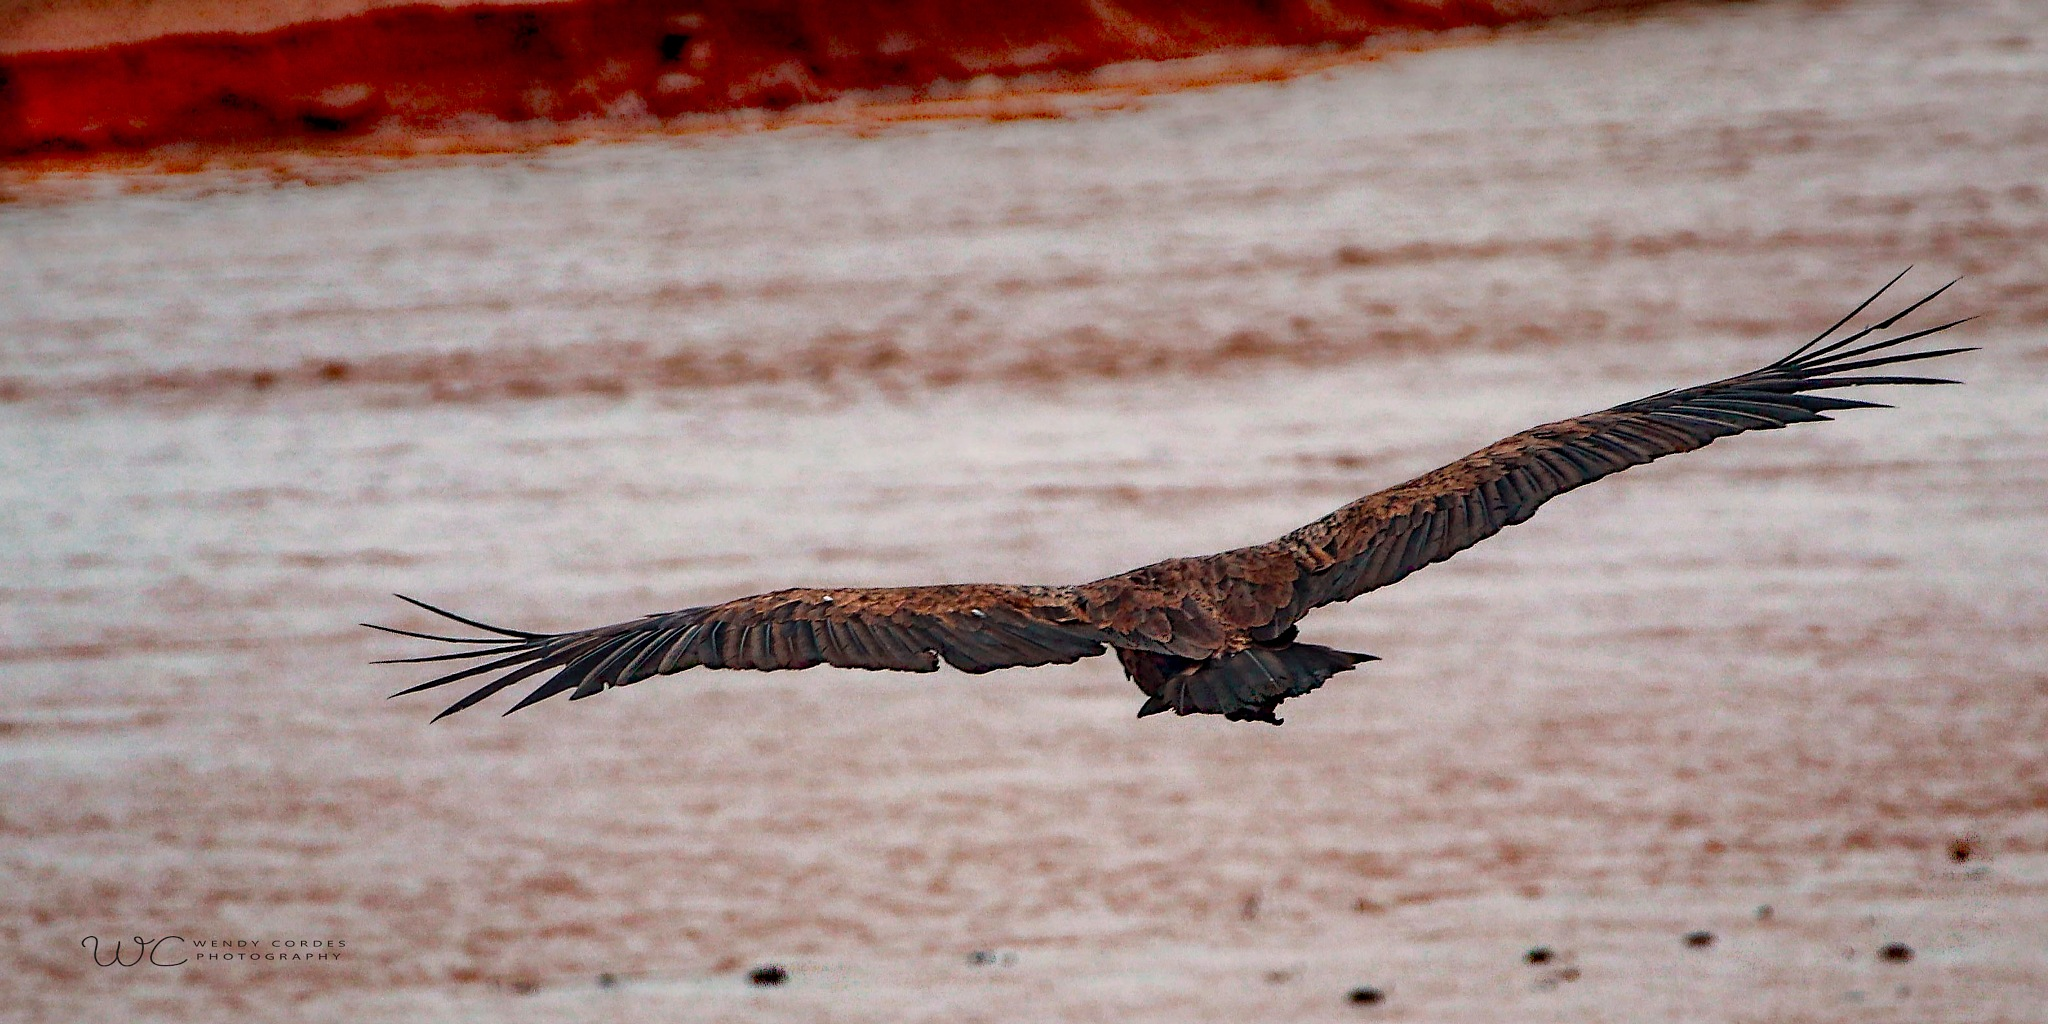 Vulture Landing by Wendy Cordes